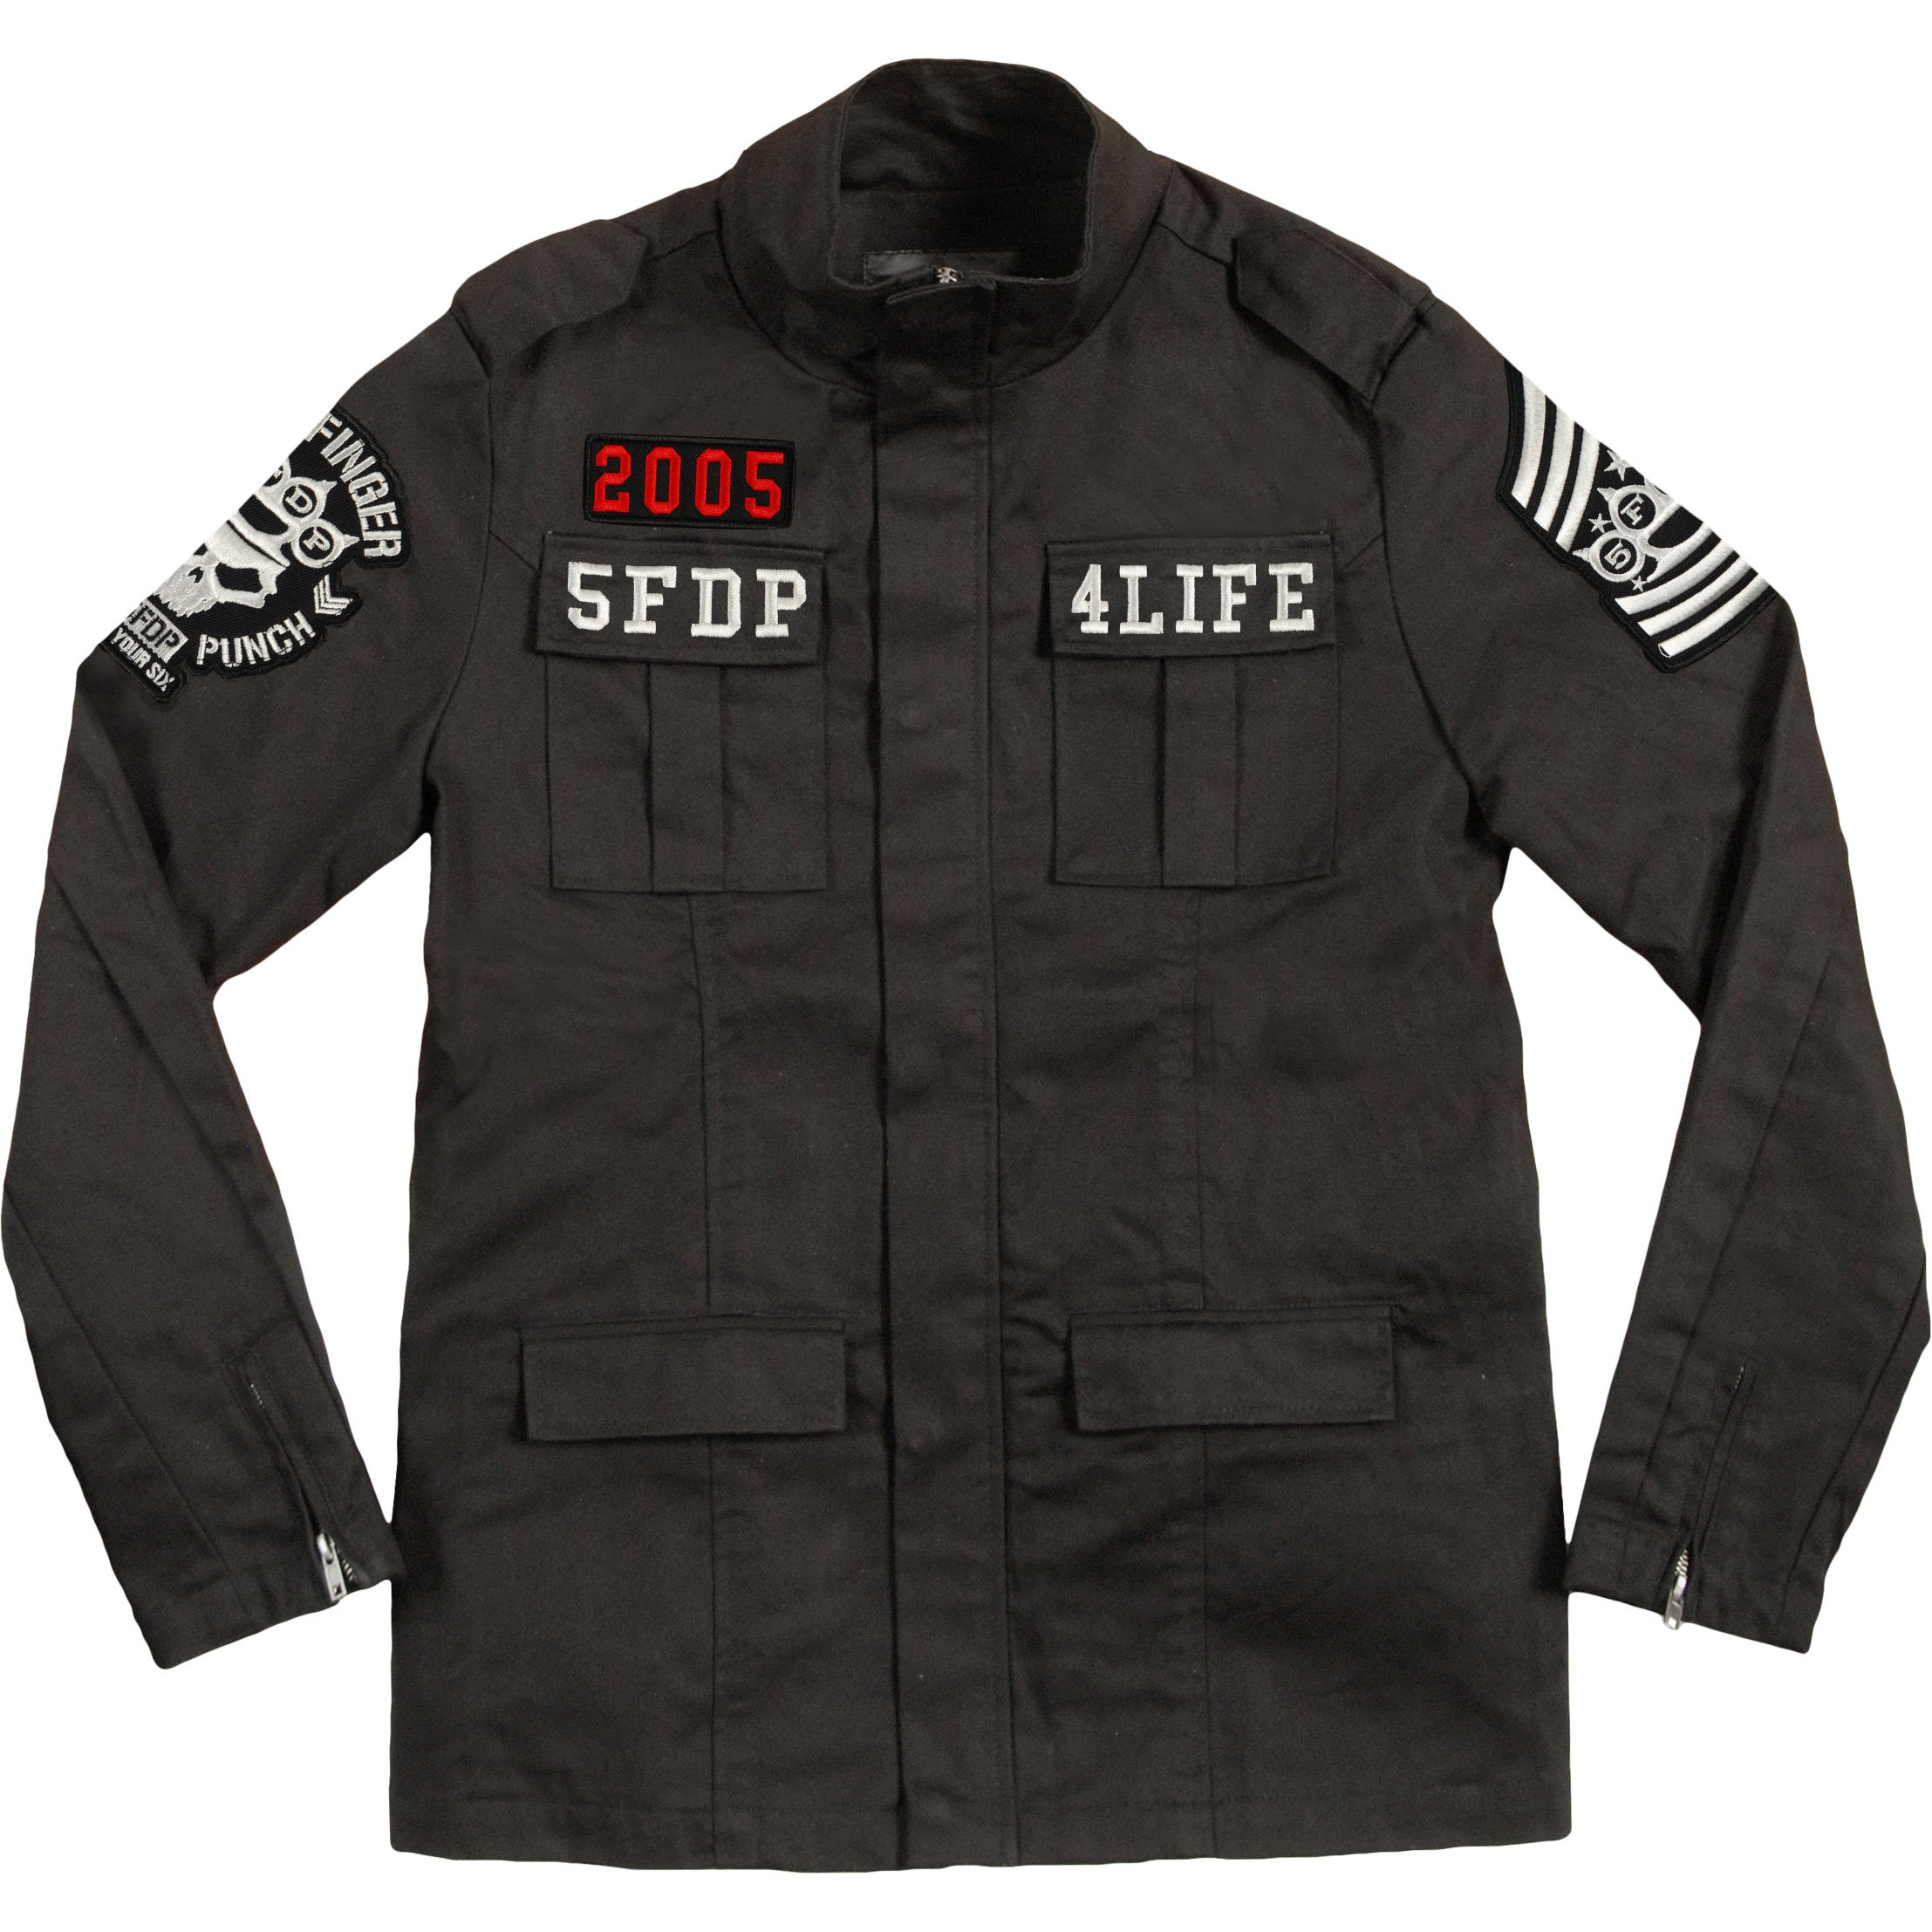 Five Finger Death Punch Military Jacket - Black (Large)